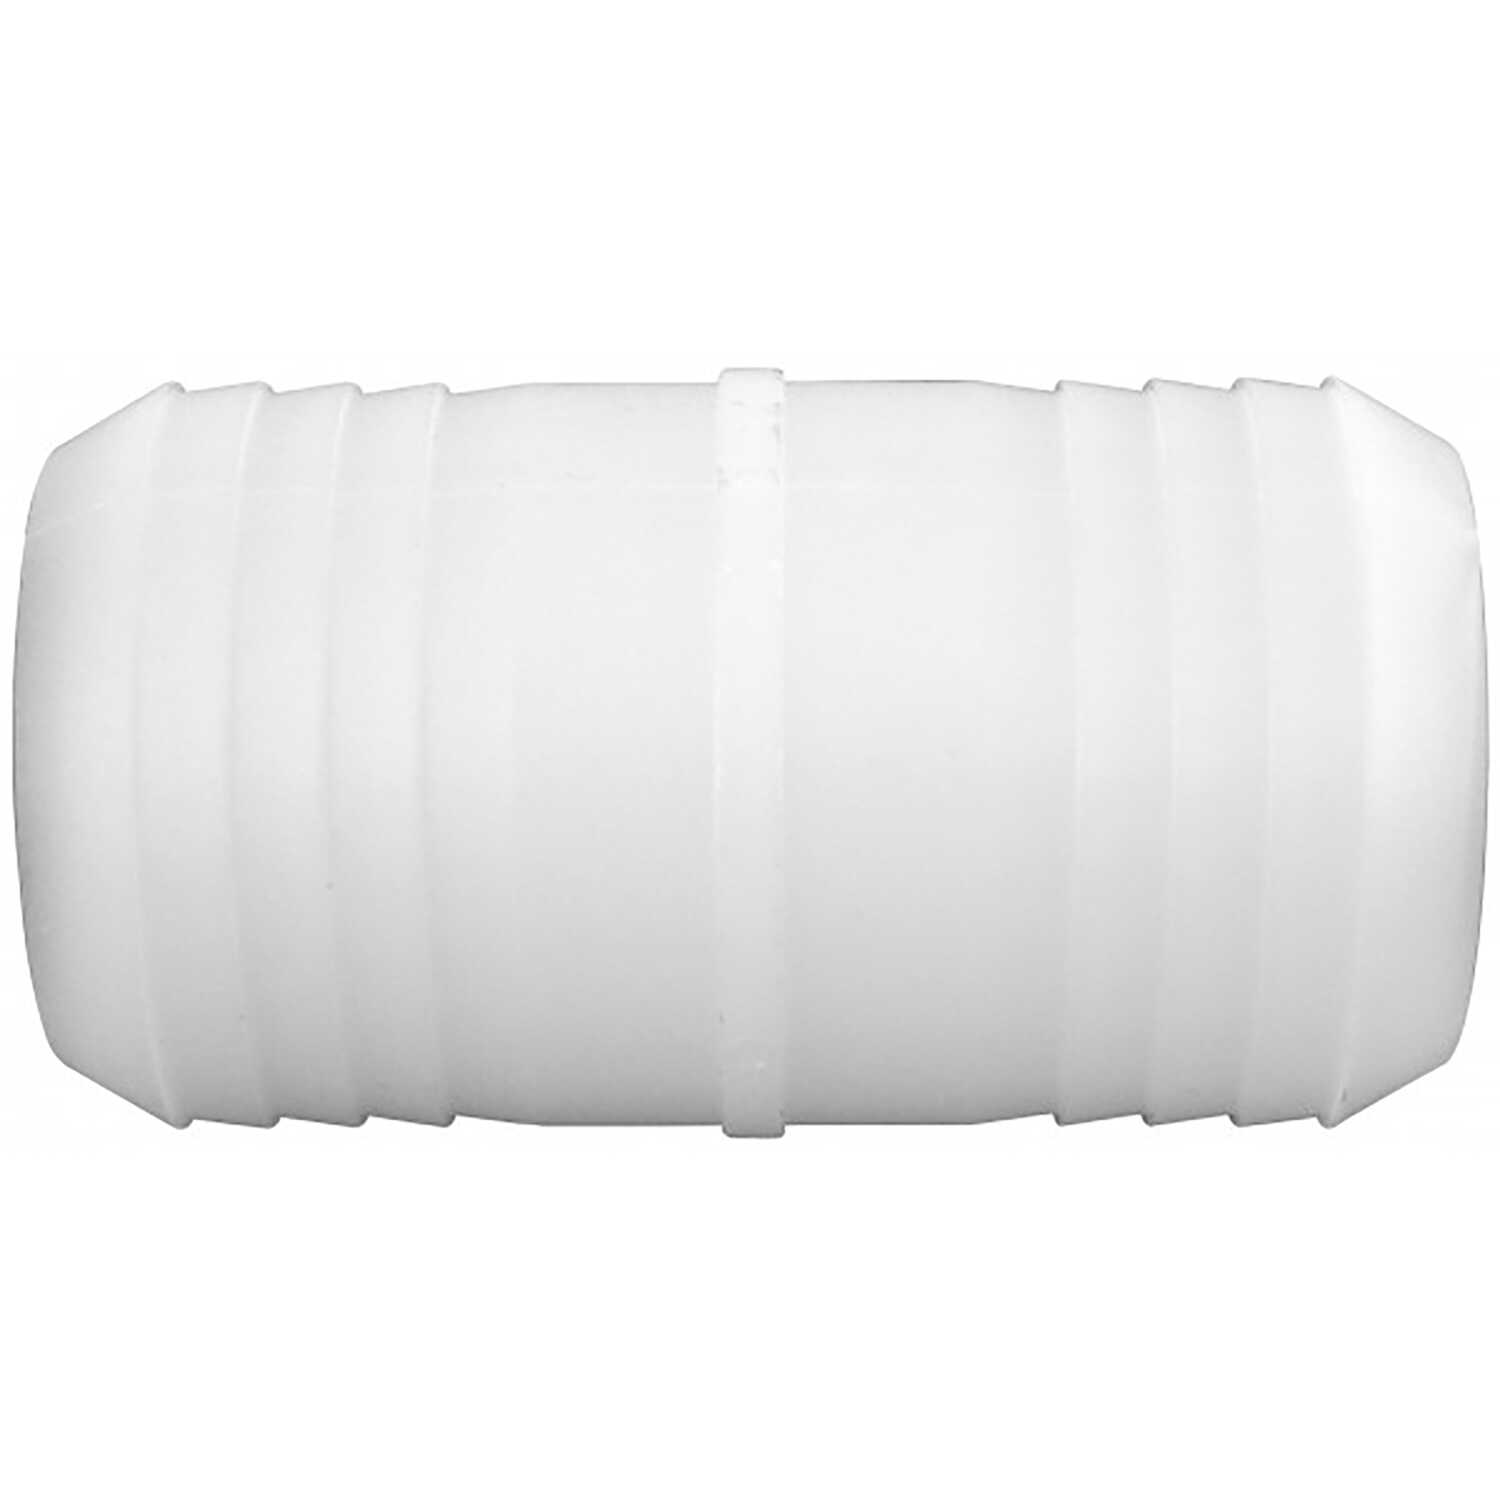 Green Leaf  Nylon  Hose Mender  1/2 in. Dia. x 1/2 in. Dia. White  1 each